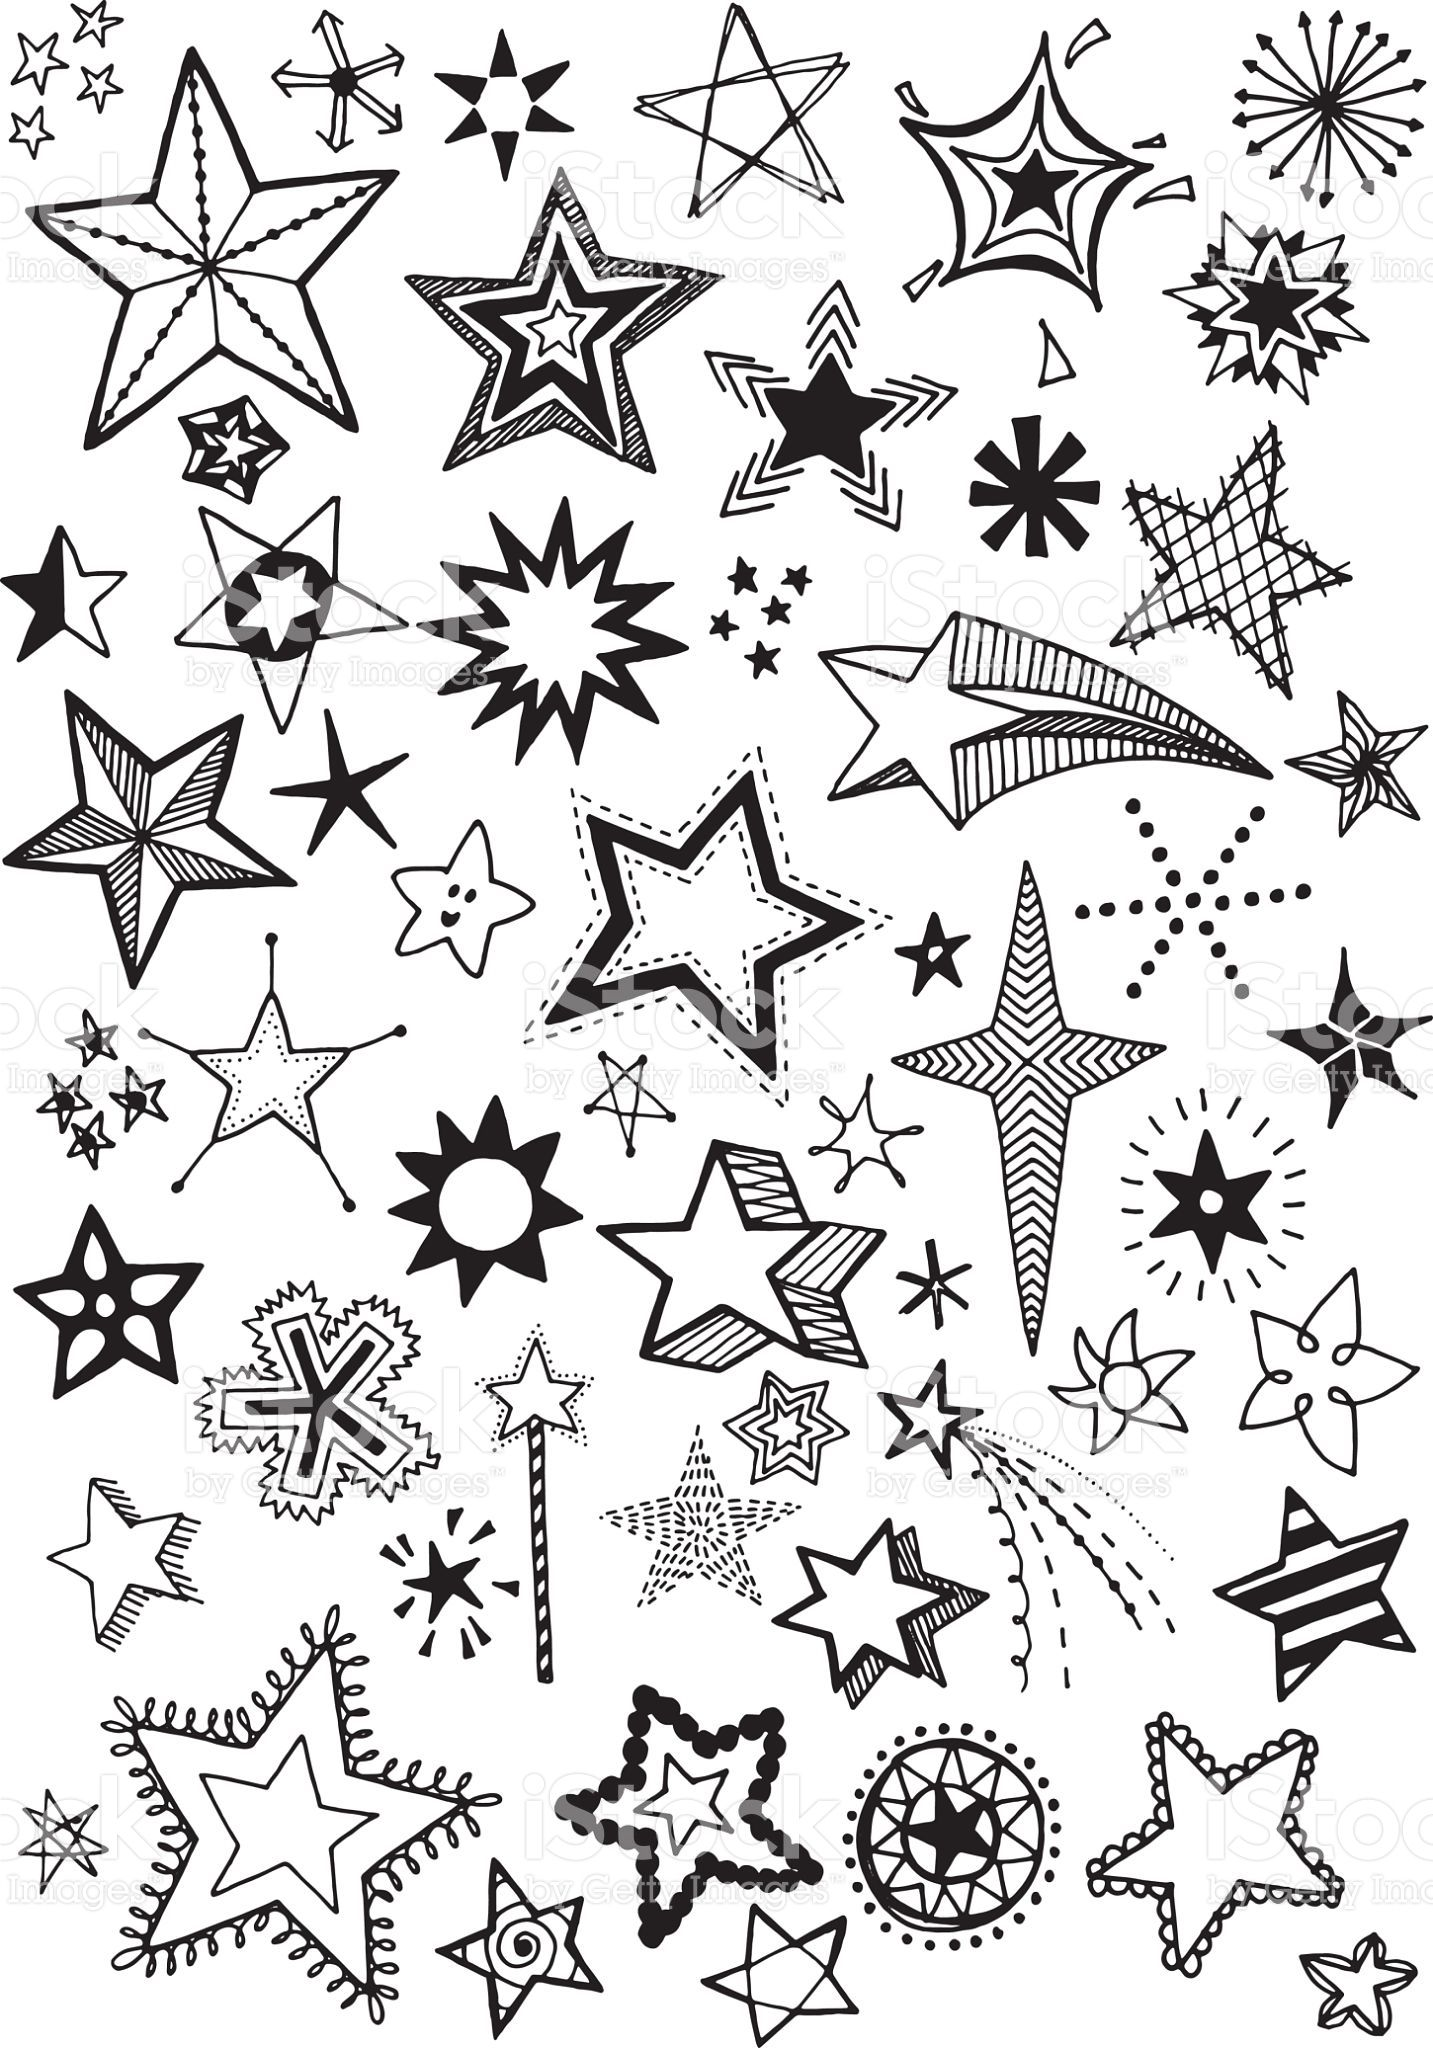 Quirky and fun hand drawn star vector shapes Hand